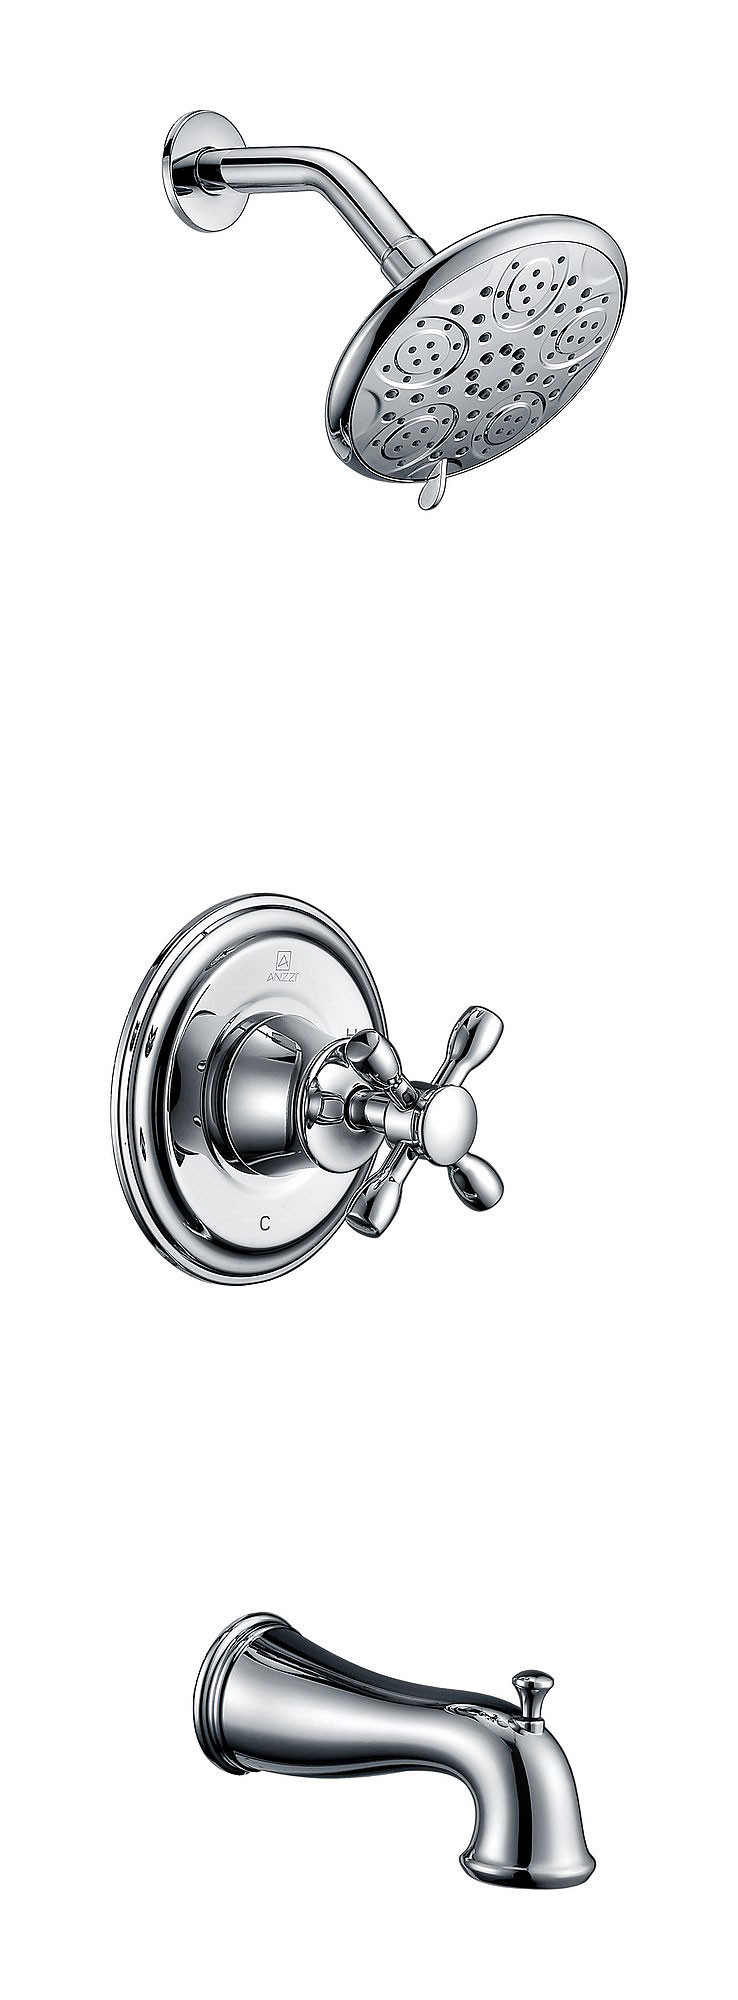 ANZZI SH-AZ033 Mesto Cross Handle Tub and Shower Faucet In Polished Chrome